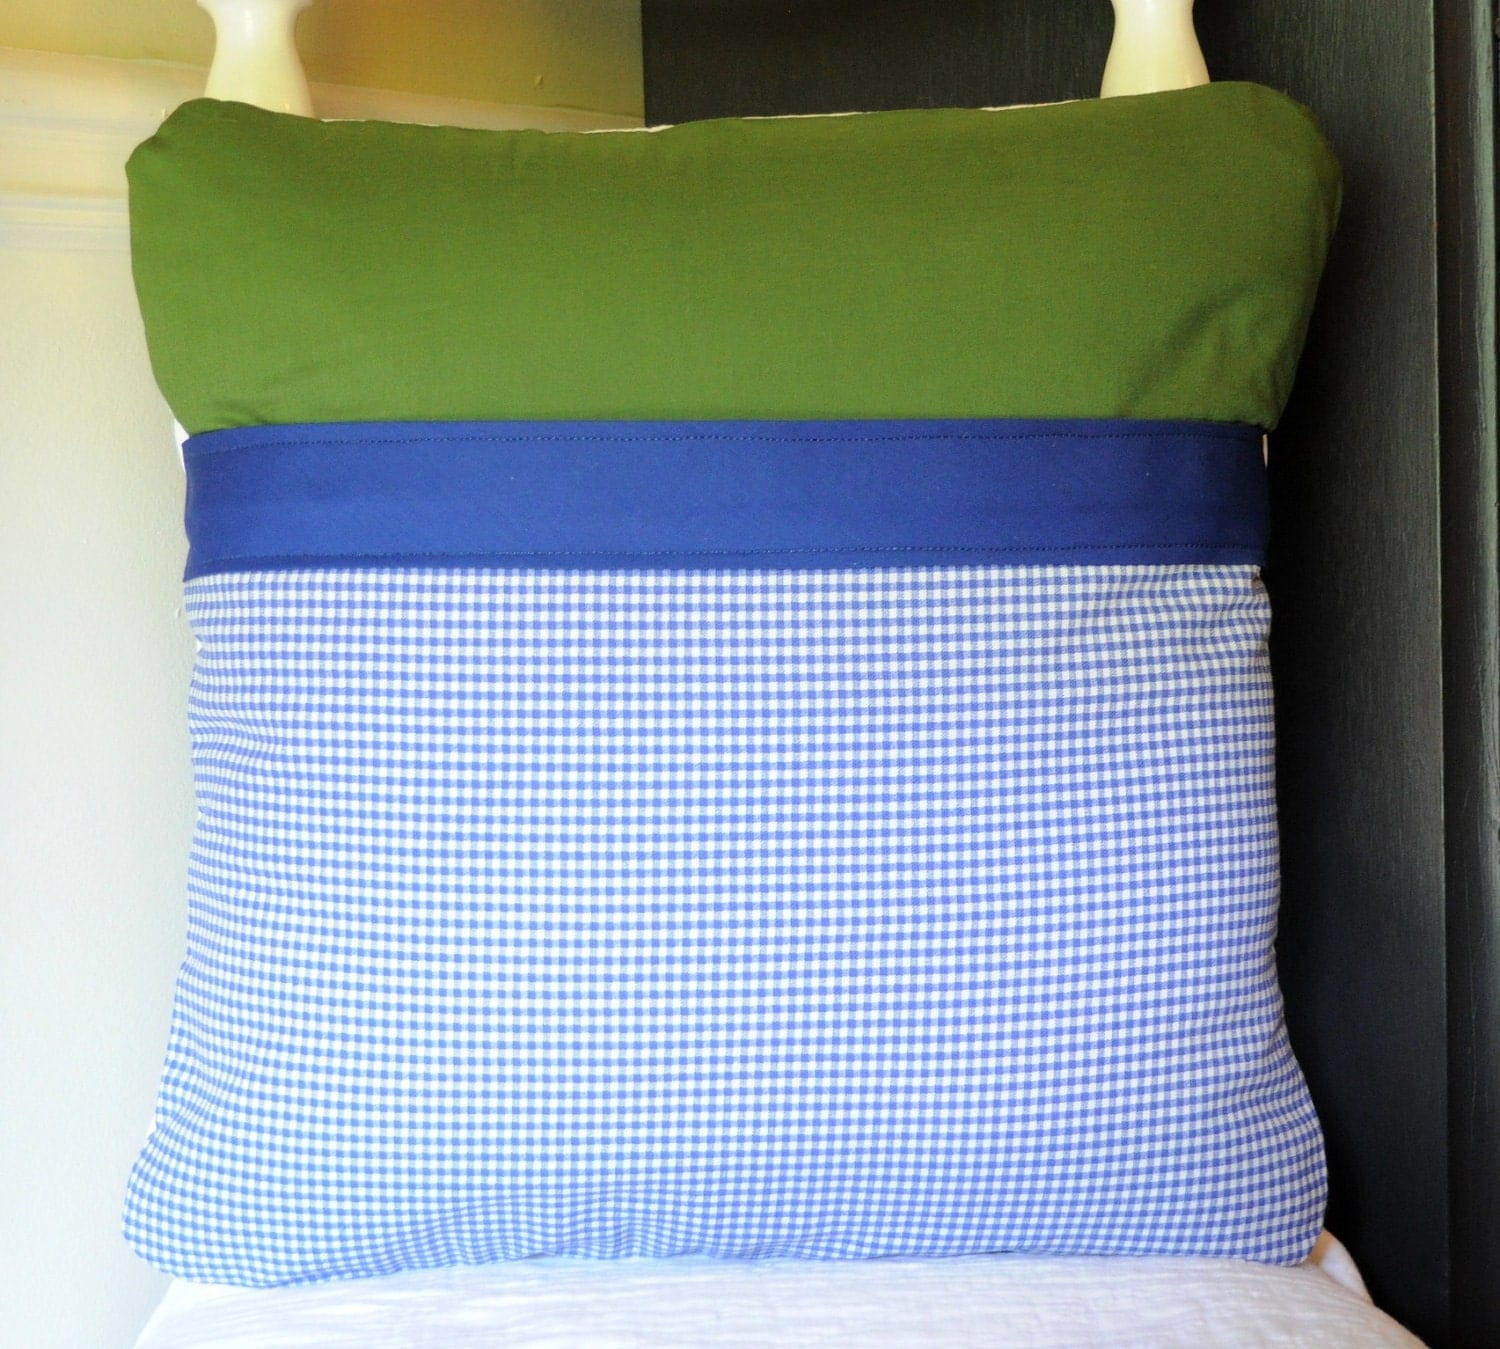 Bible Memory Verse Pillow Cover, Blue and Green